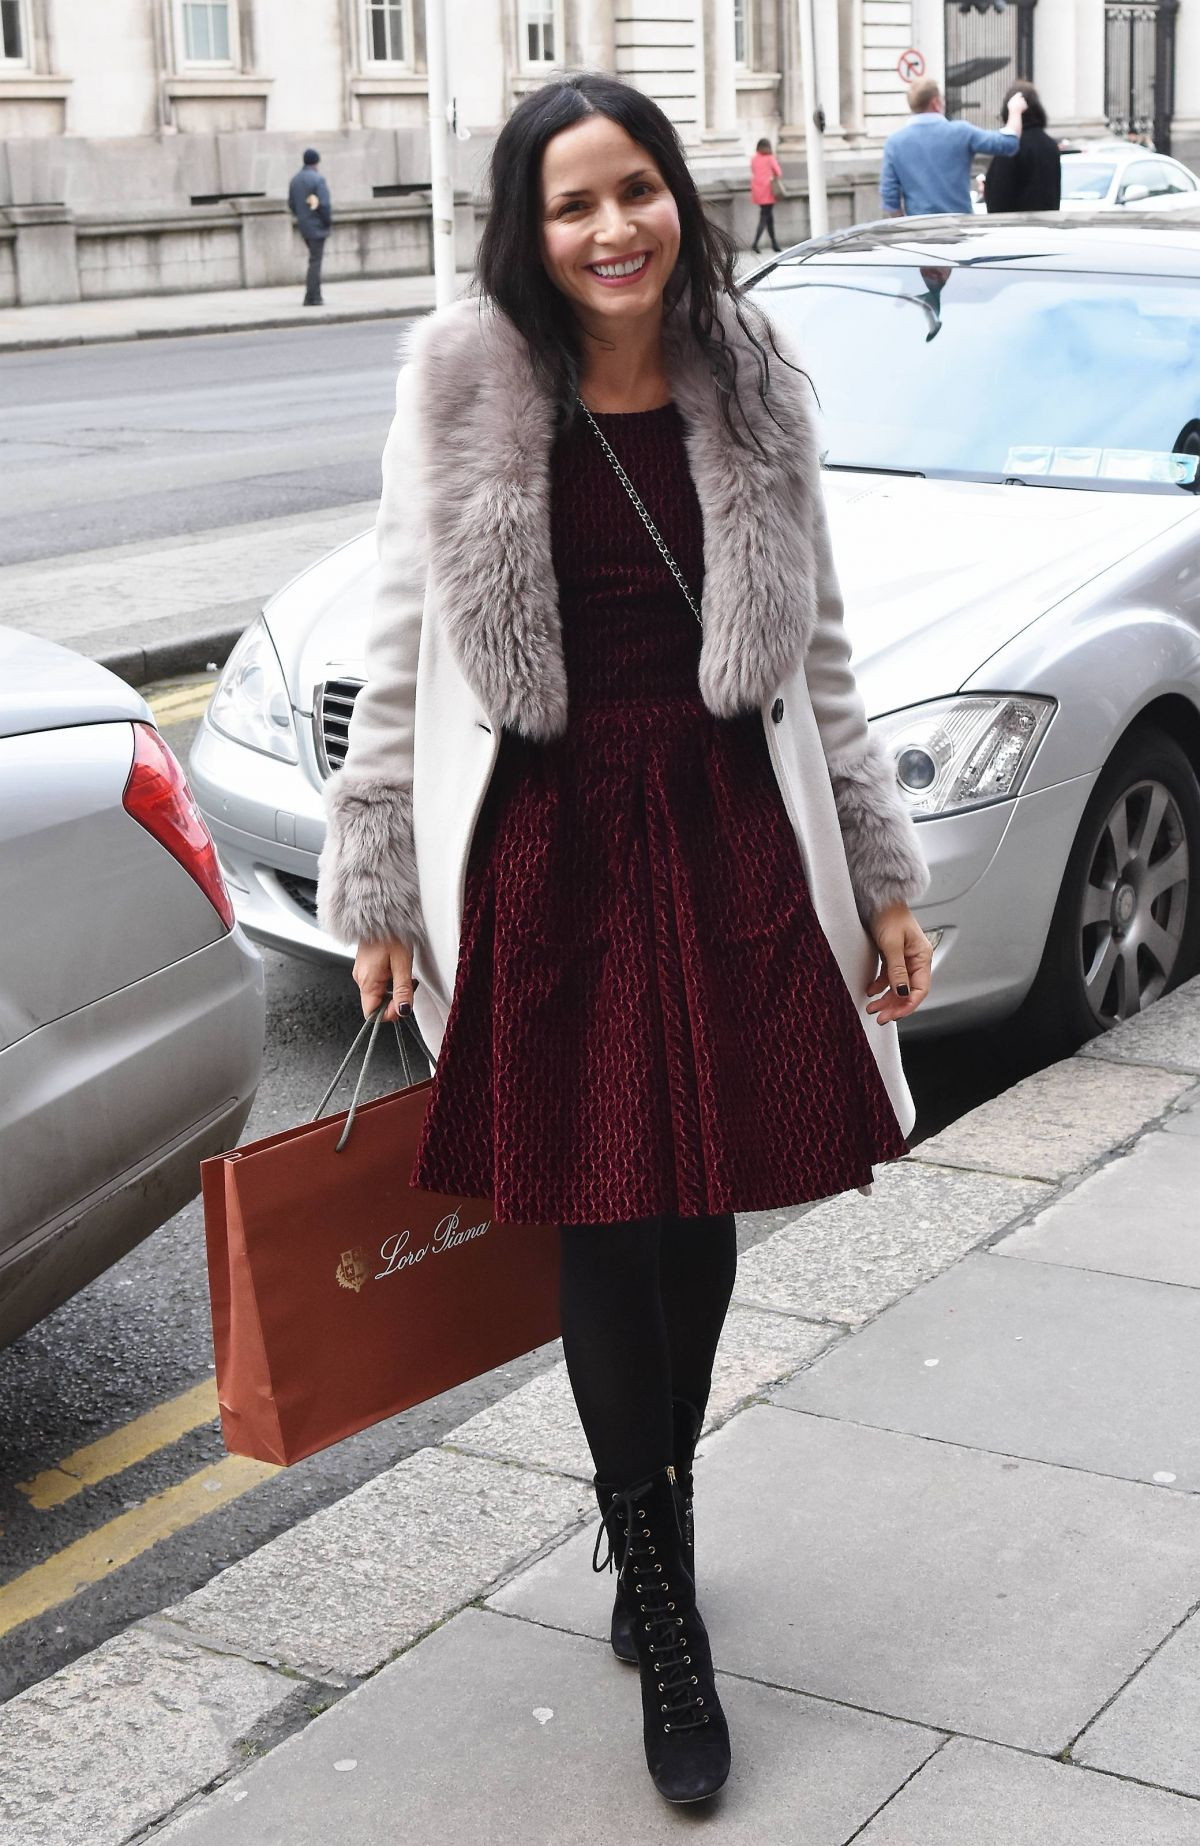 Andrea corr out and about in dublin 02222018 hawtcelebs andrea corr out and about in dublin 02222018 altavistaventures Choice Image